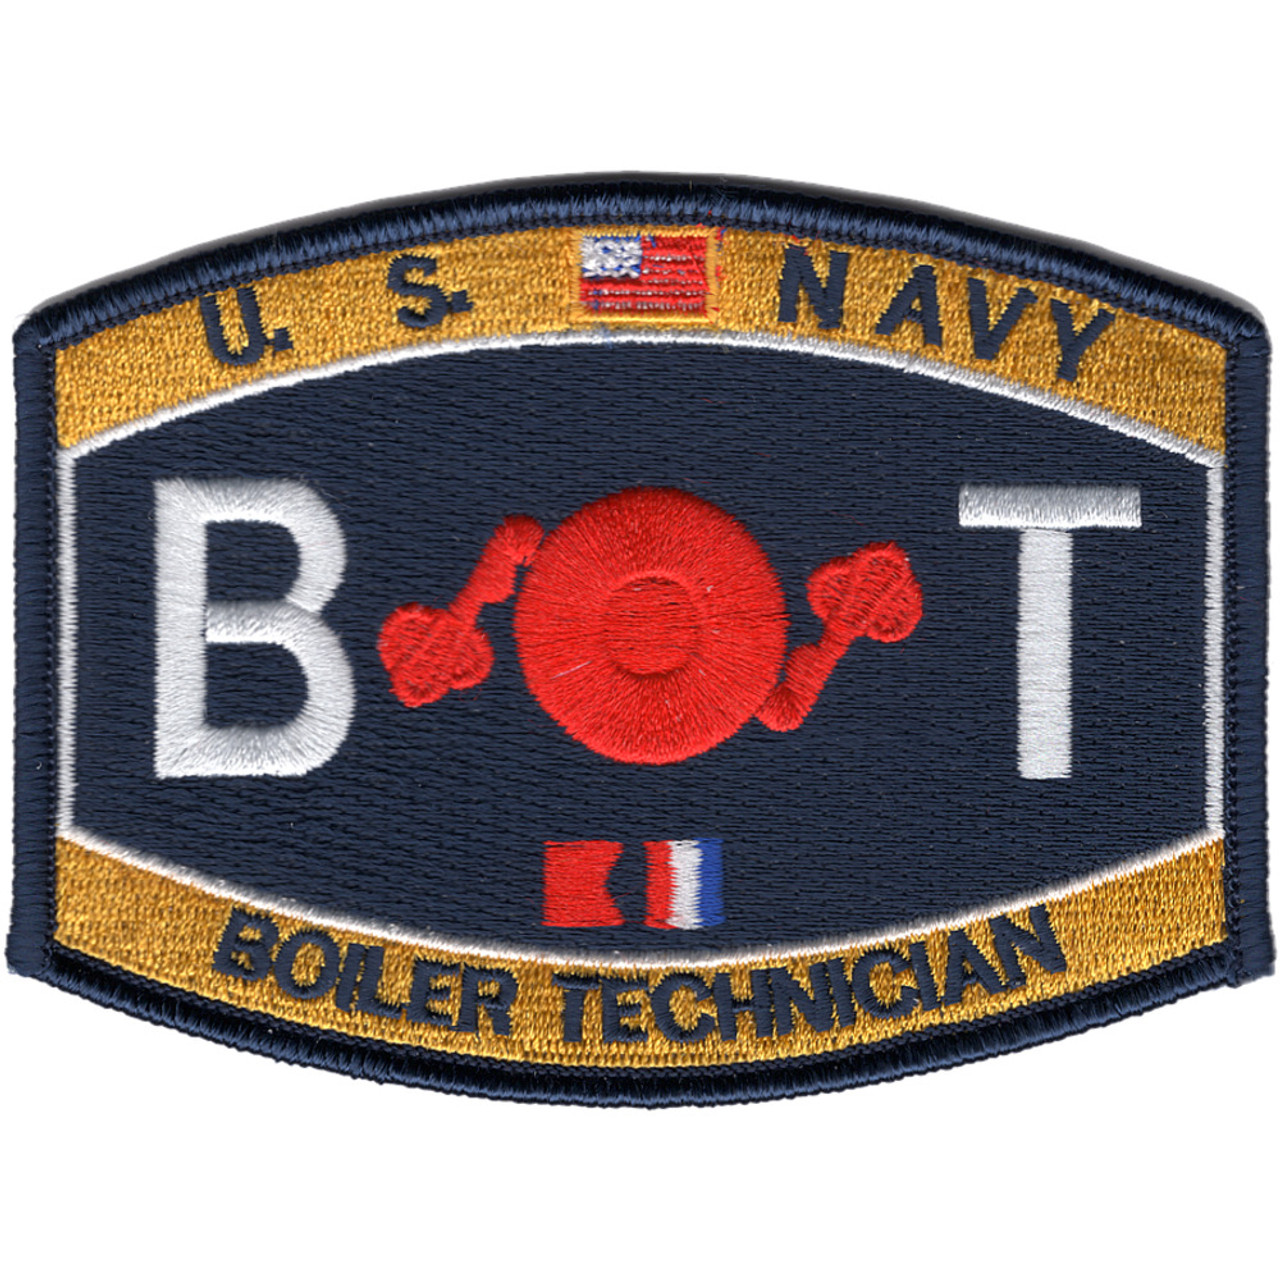 Engineering Rating Boiler Technician Patch | Ratings Patches | Navy Patches  | Popular Patch